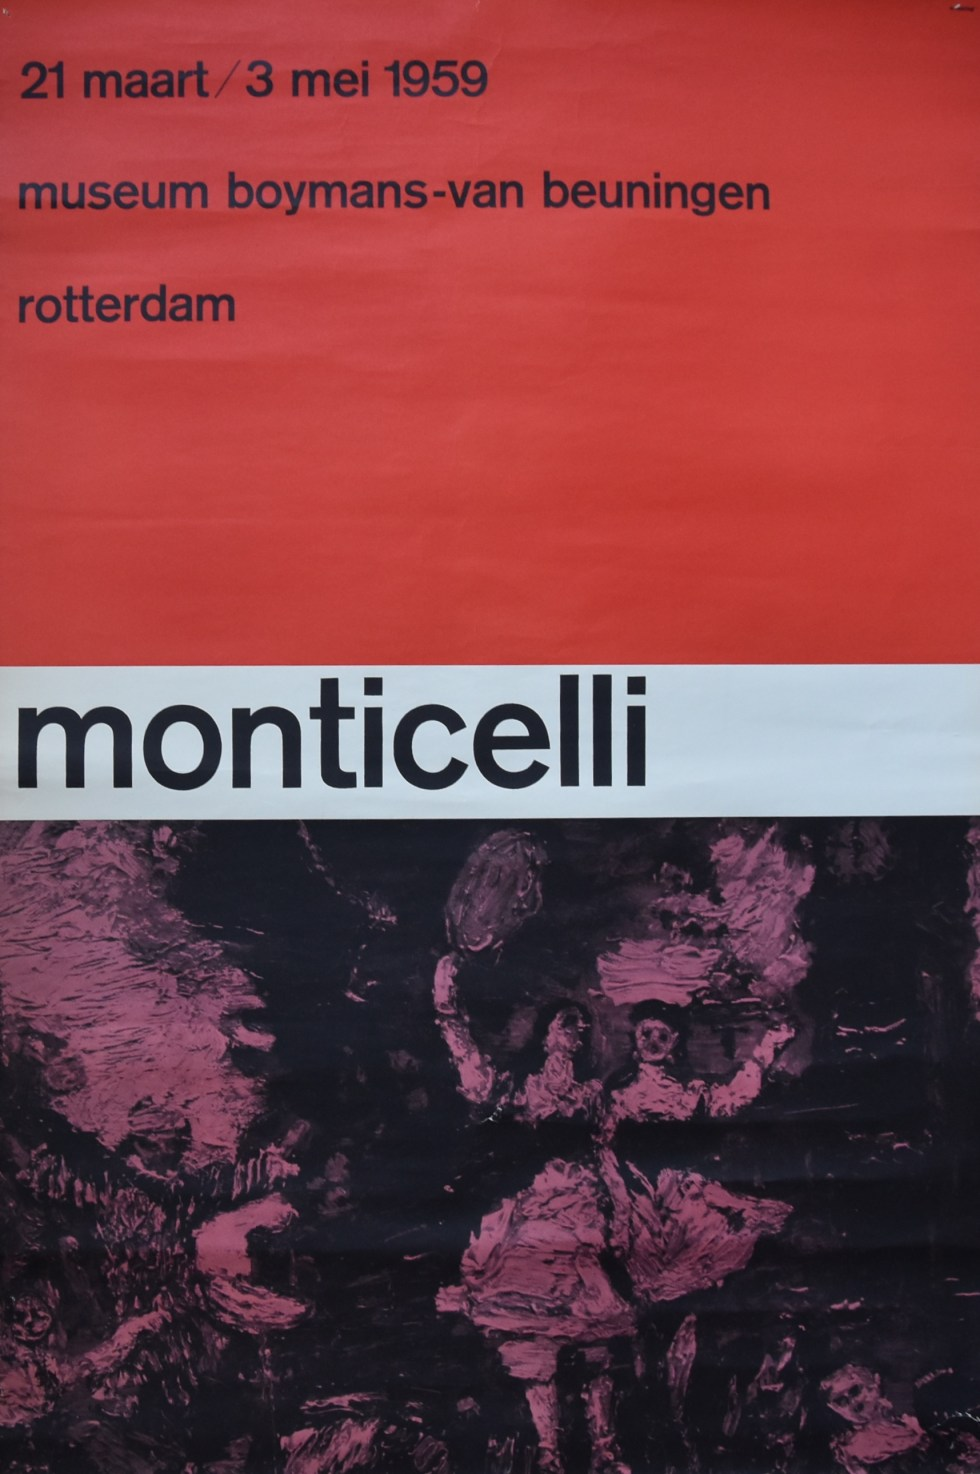 MONTICELLI aa